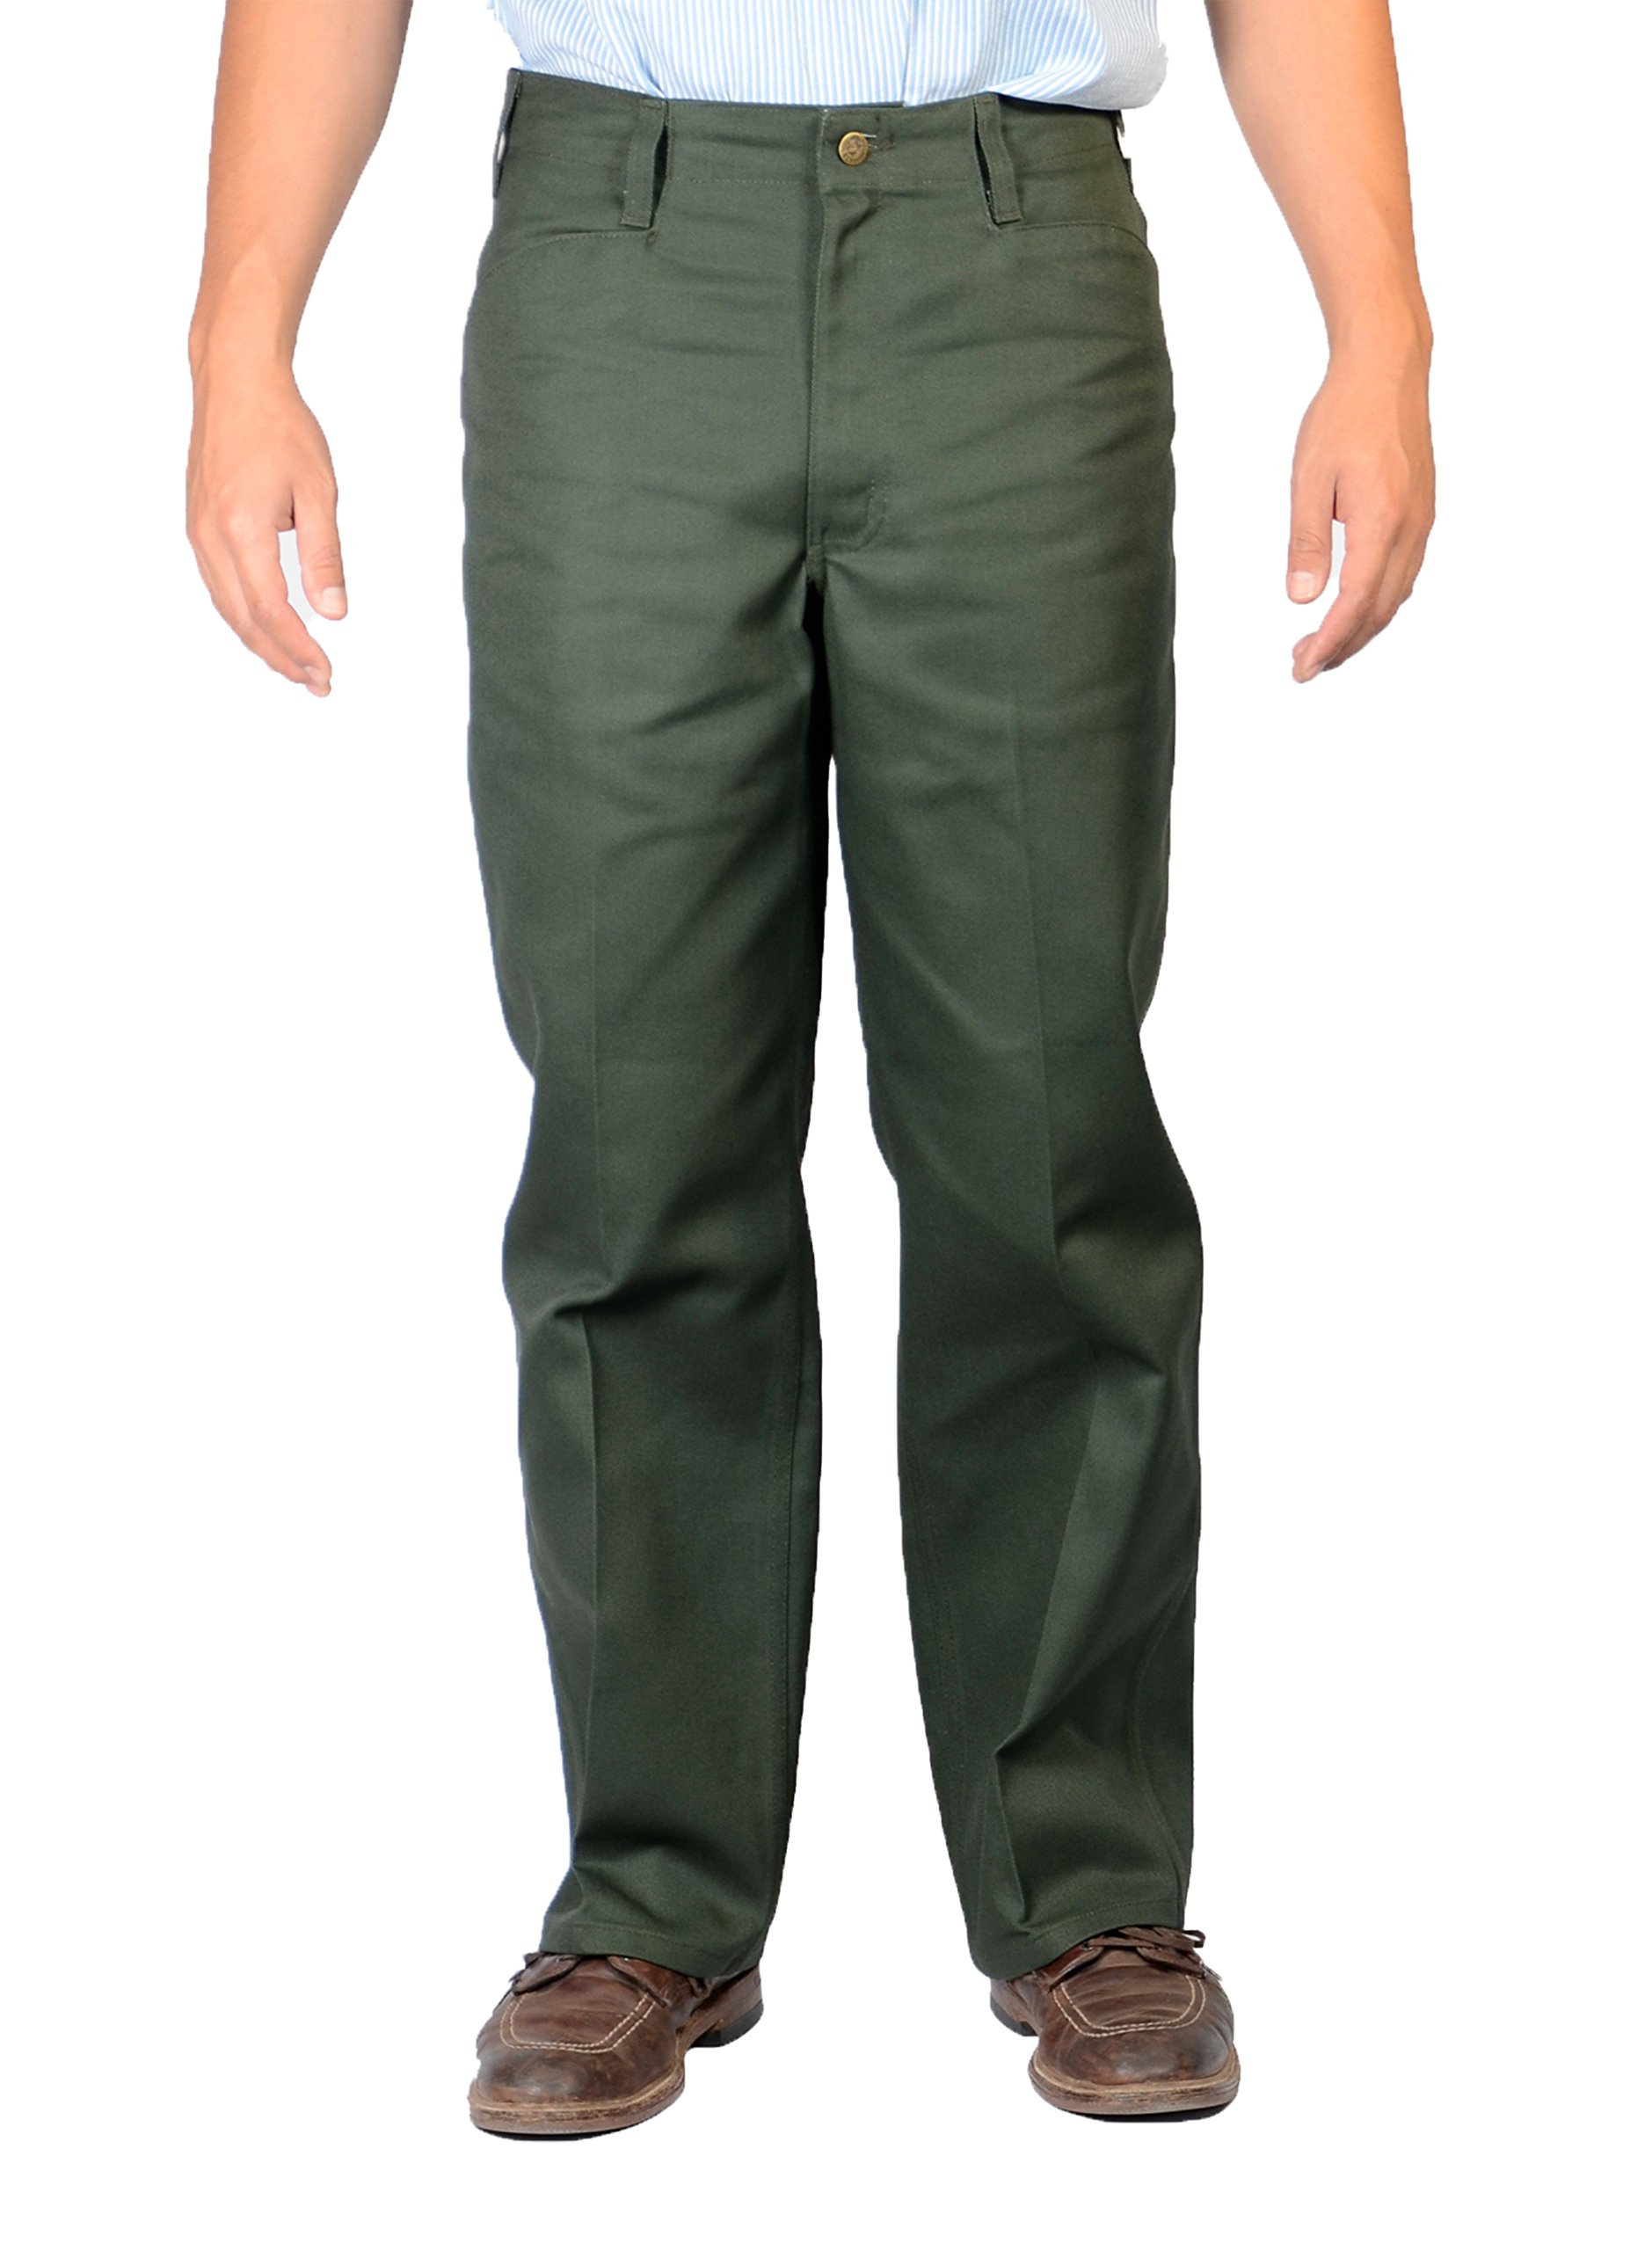 Ben Davis Olive Original Ben's Cotton Twill Pants 36X32